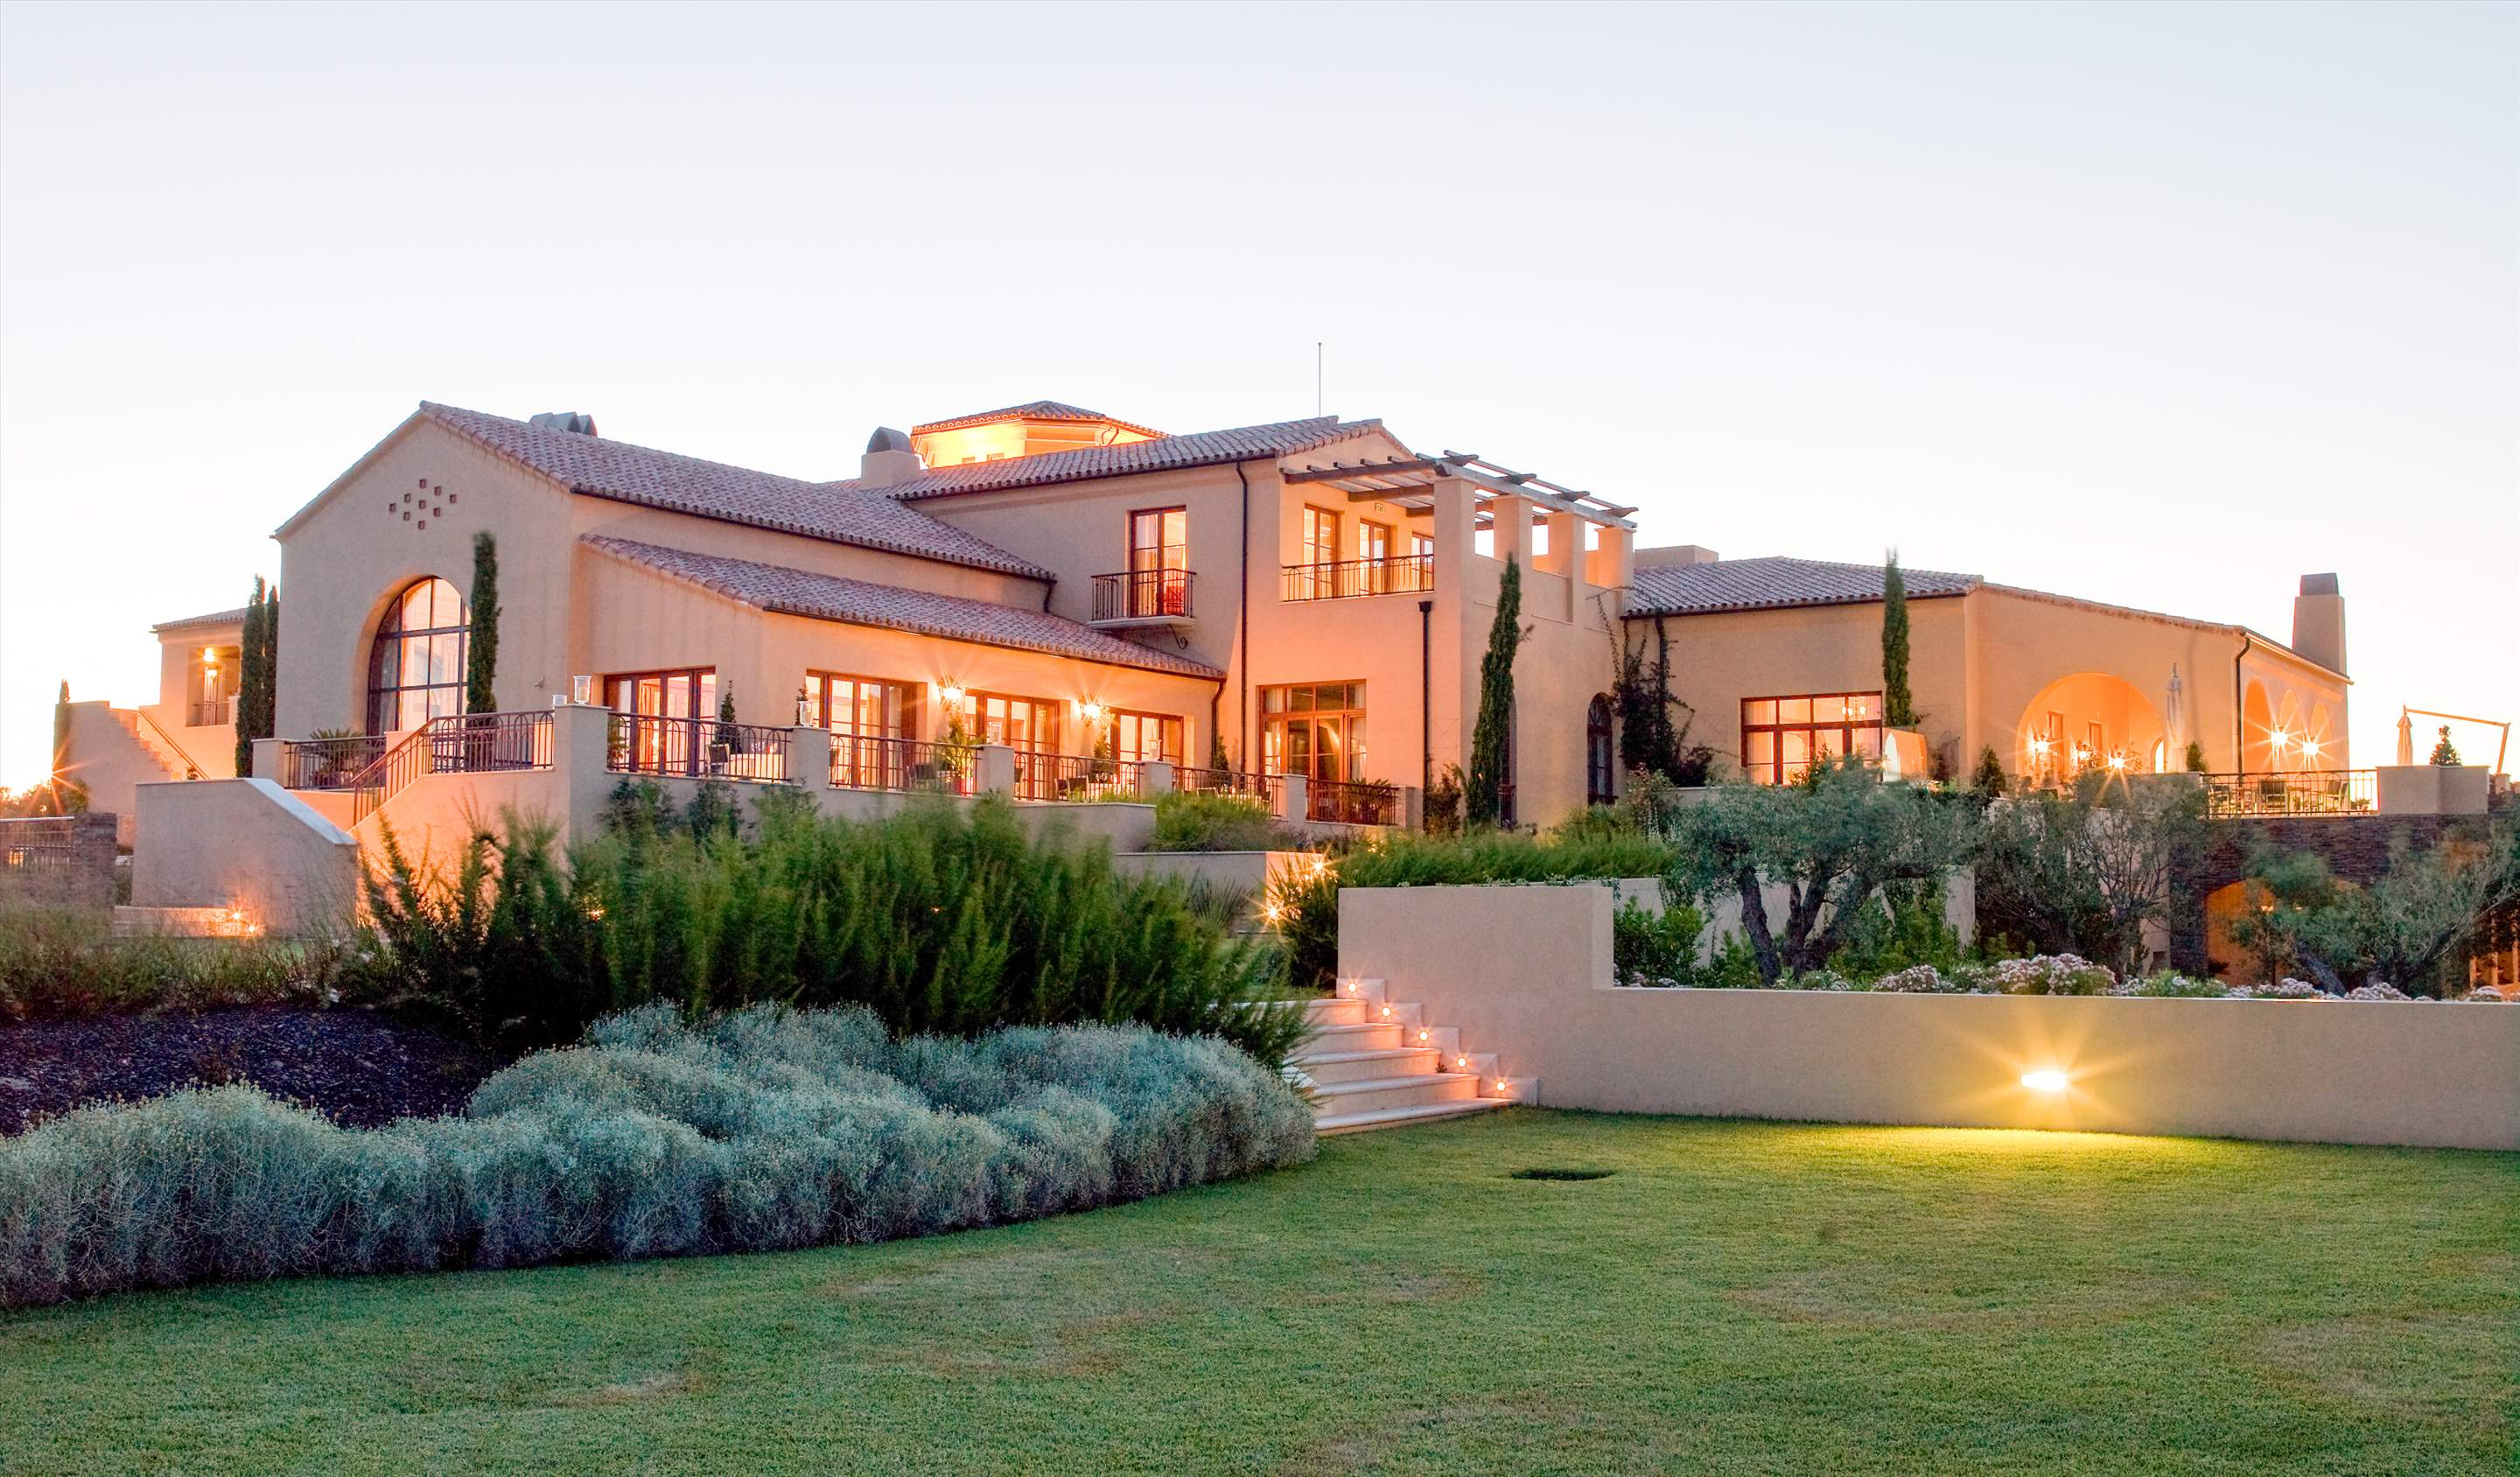 Monte Rei Three Bedroom Villa with Private Pool, 3 bedroom villa in Monte Rei Country Club, Algarve Photo #17